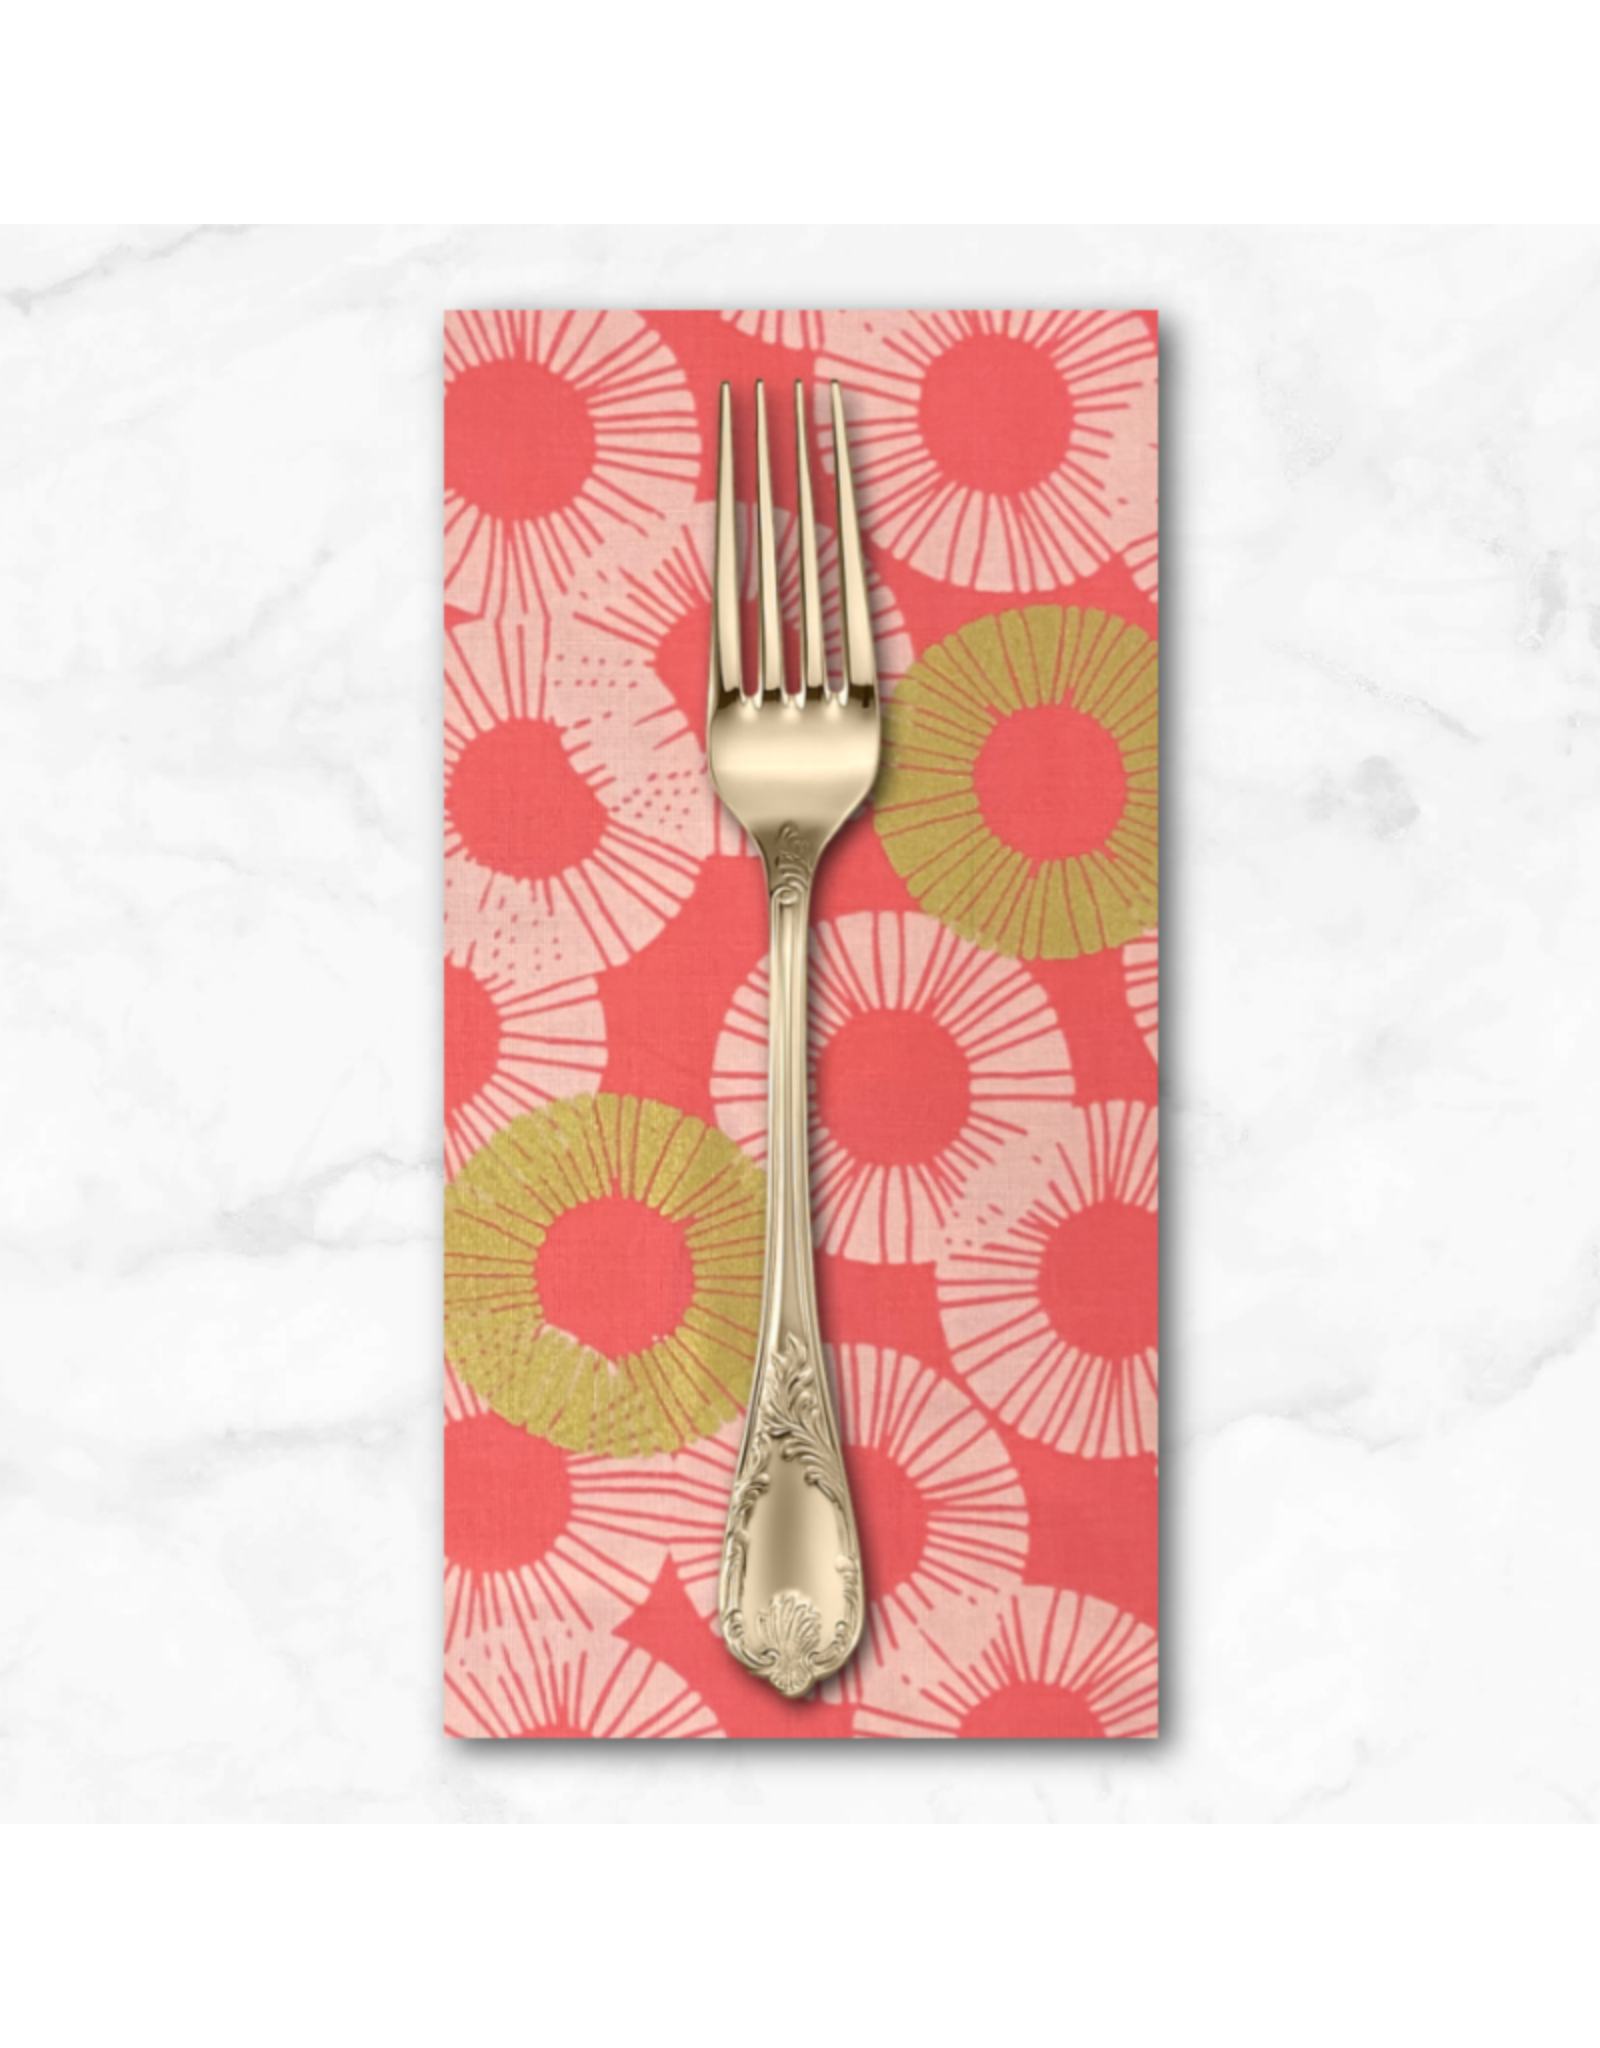 PD's RJR Collection Shiny Objects, Glitz and Glamour Eclipse in Pink Paradise with Gold Metallic, Dinner Napkin